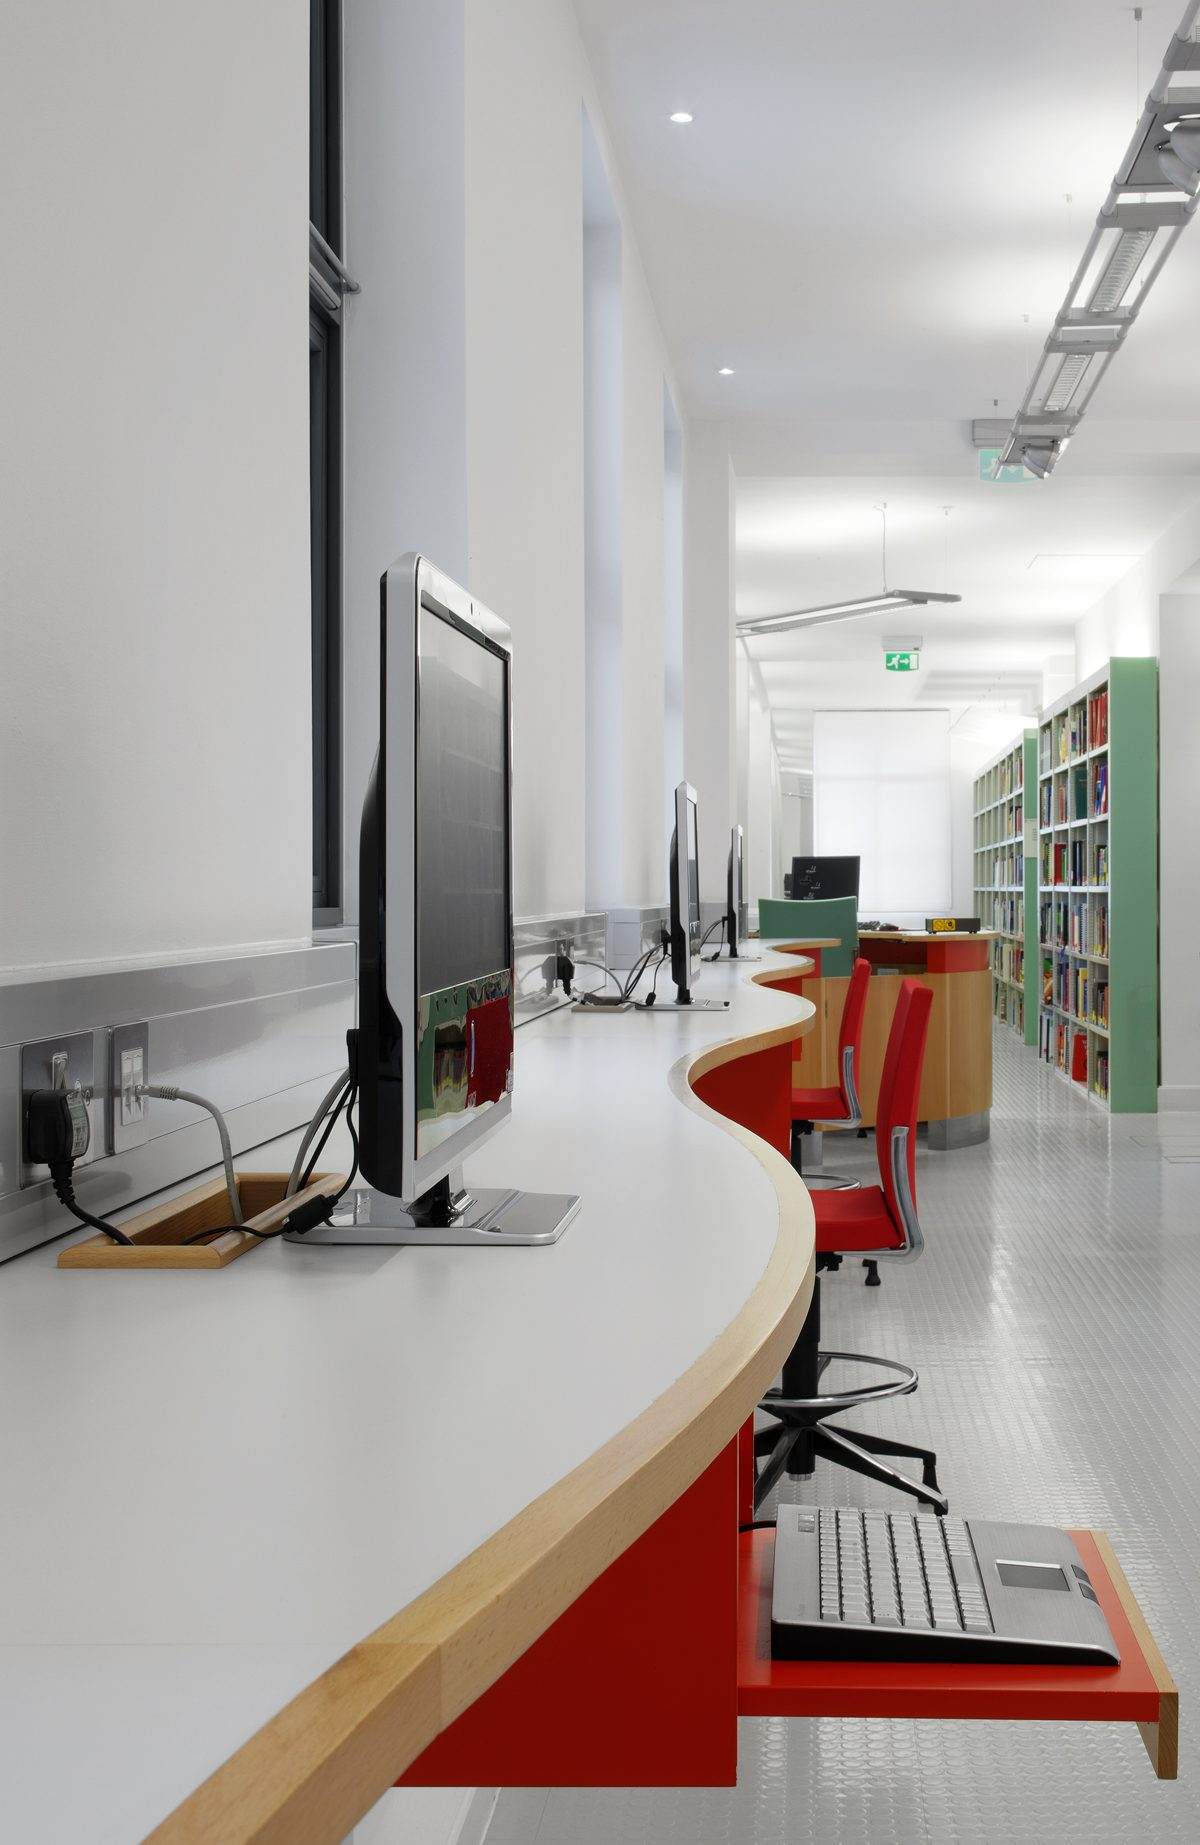 UCL School of Pharmacy - Workstations